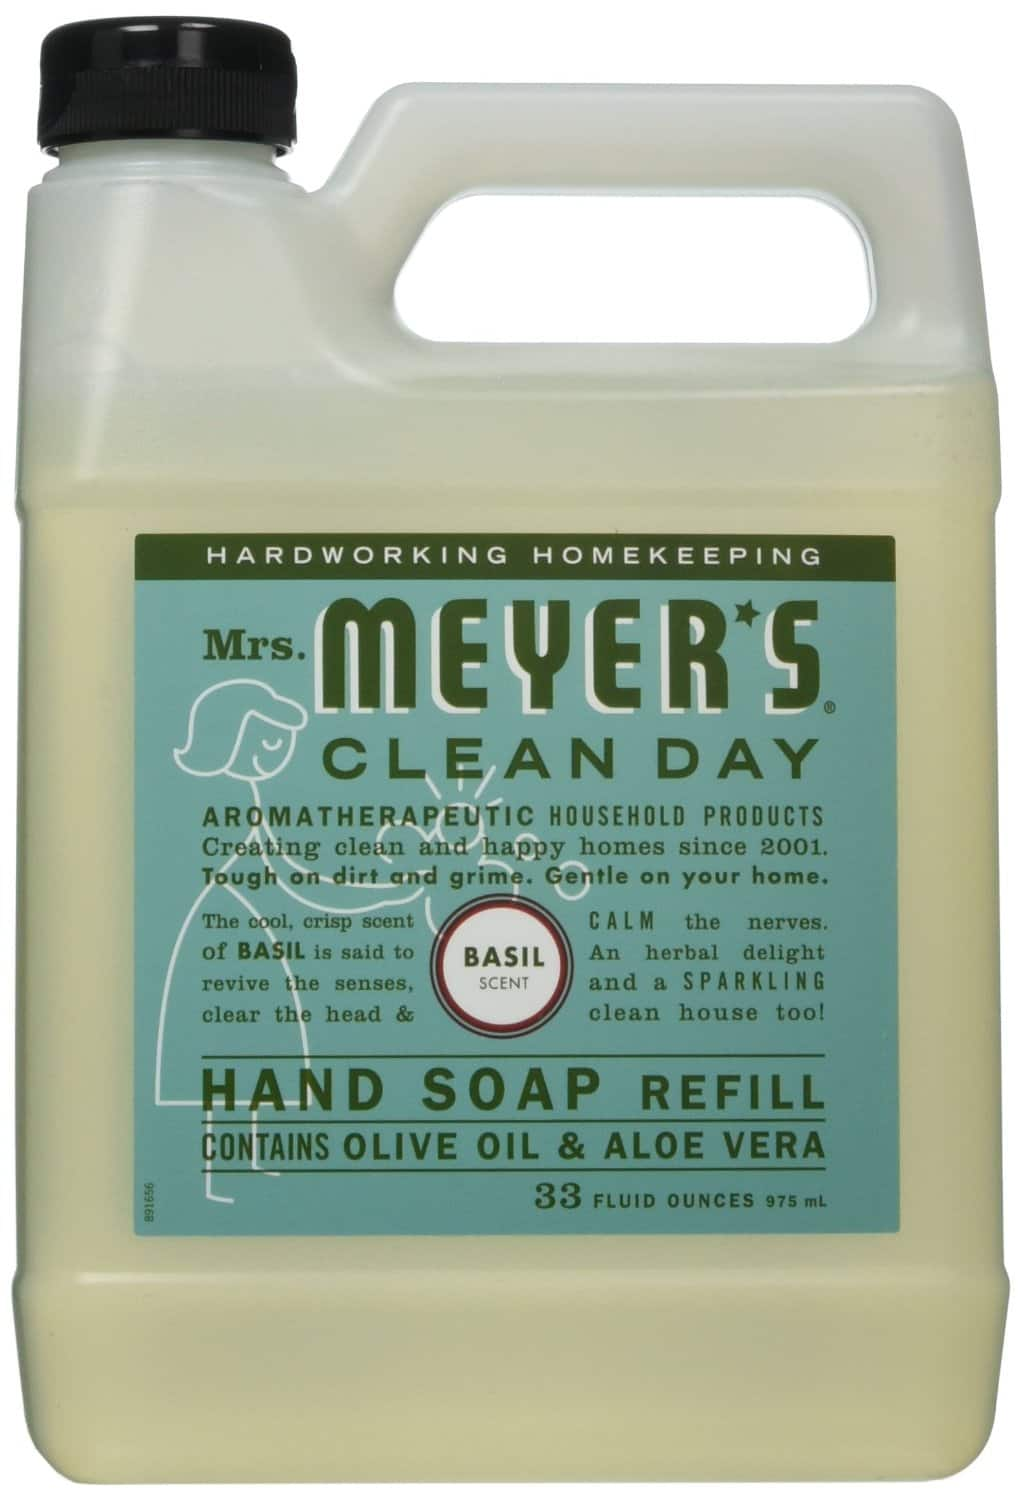 33oz Mrs. Meyers Liquid Hand Soap Refill (Basil Scent) $3.60 or Less + Free Shipping Amazon.com